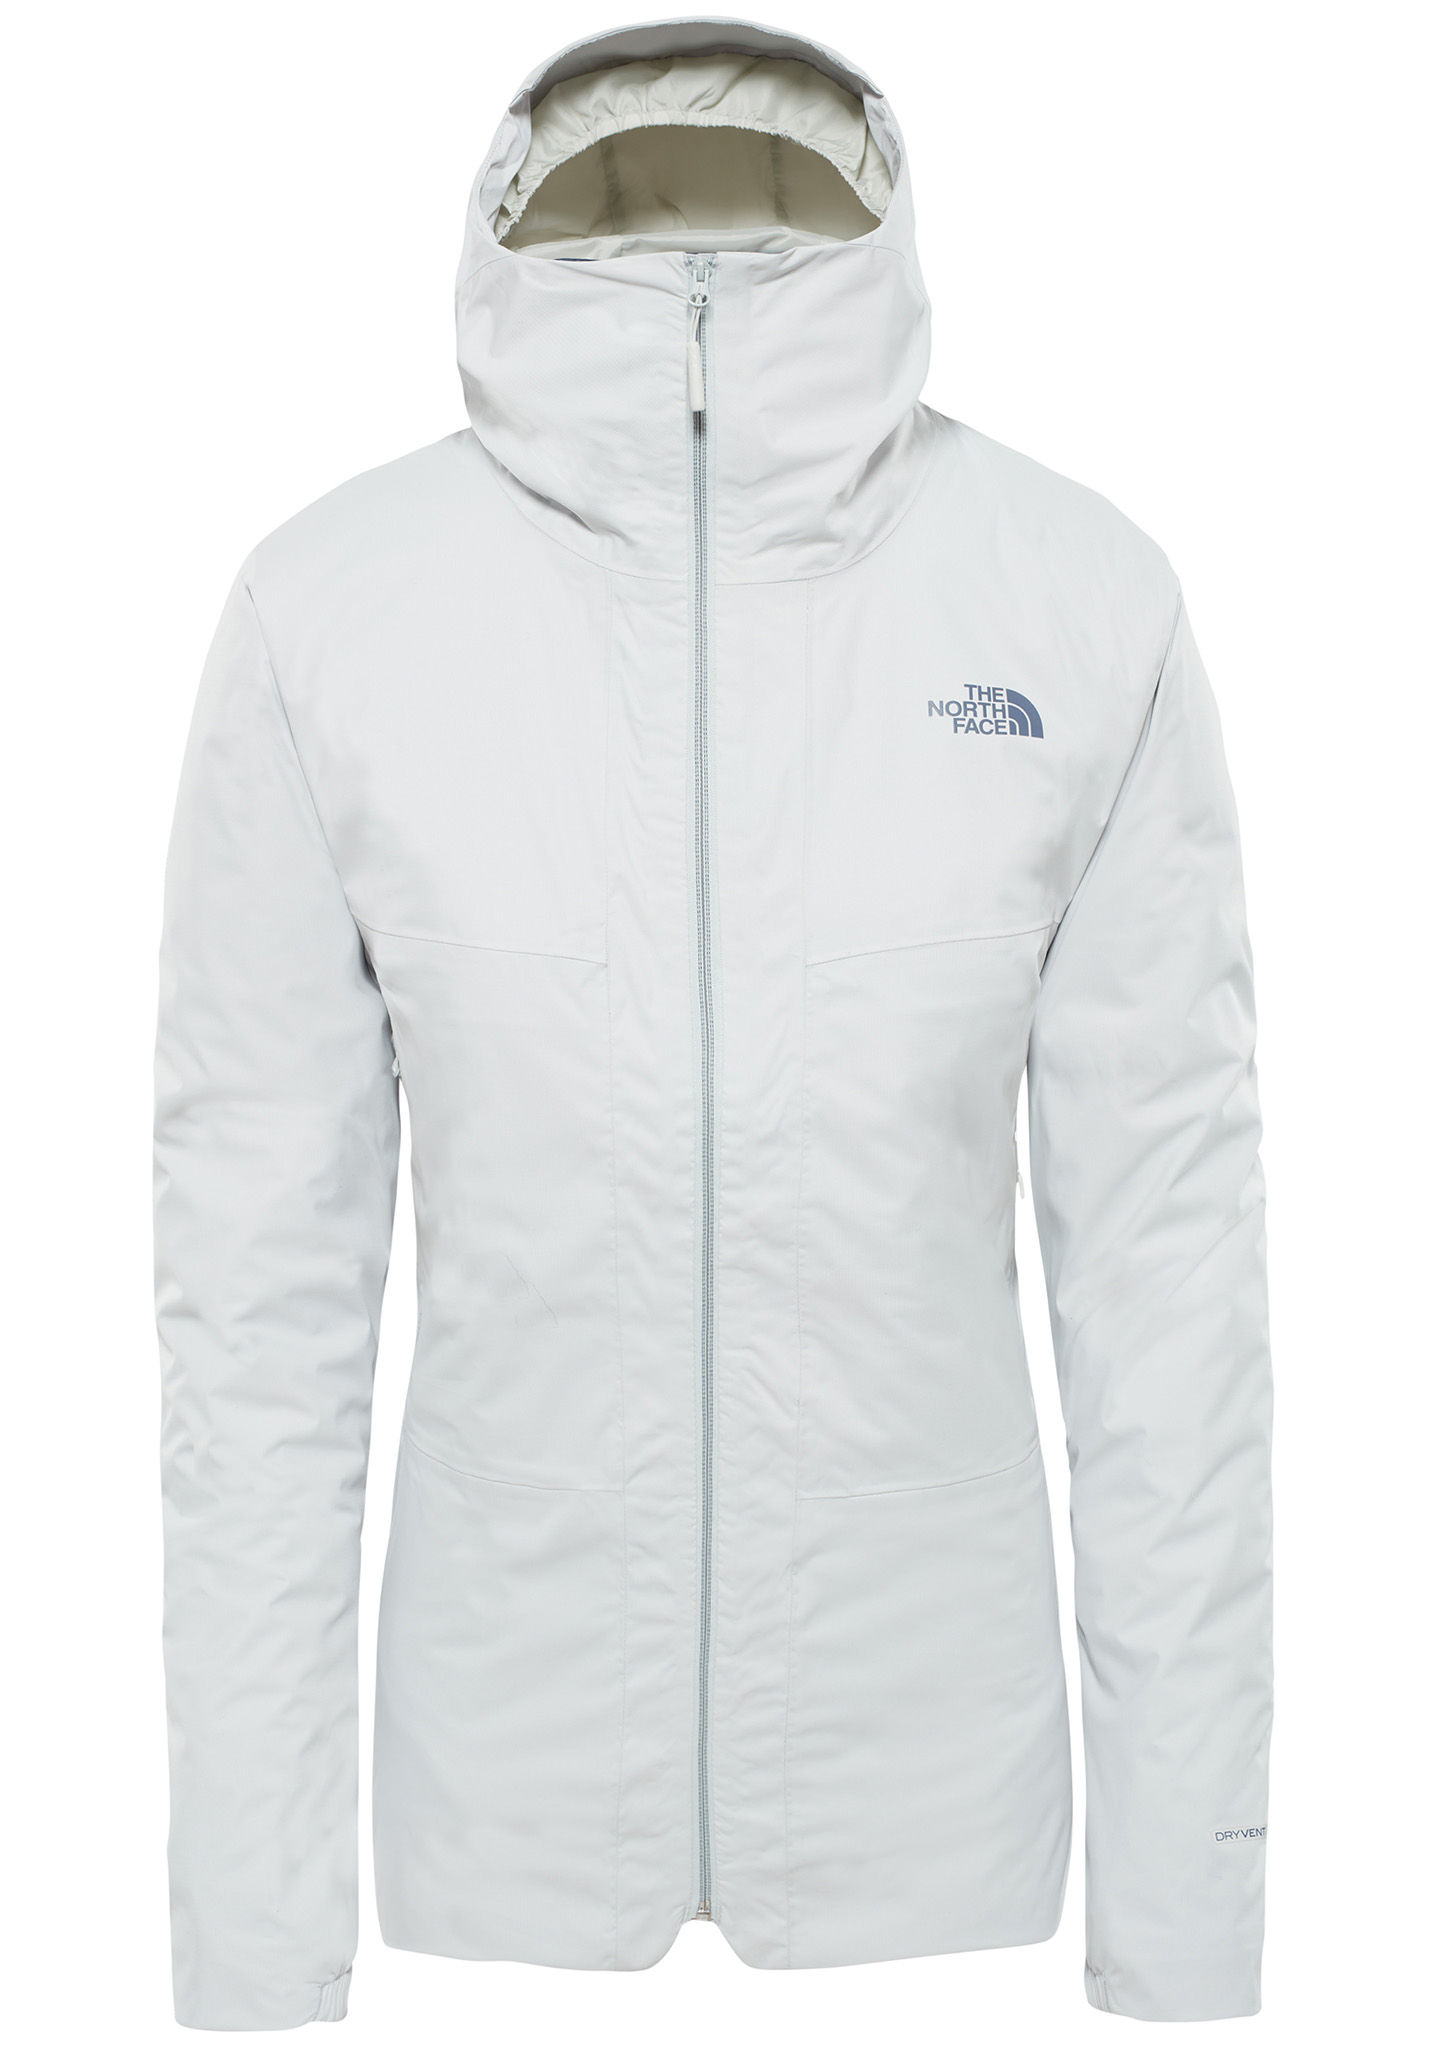 8ae6689f2 THE NORTH FACE Hikesteller Triclimate - Outdoor Jacket for Women - Grey